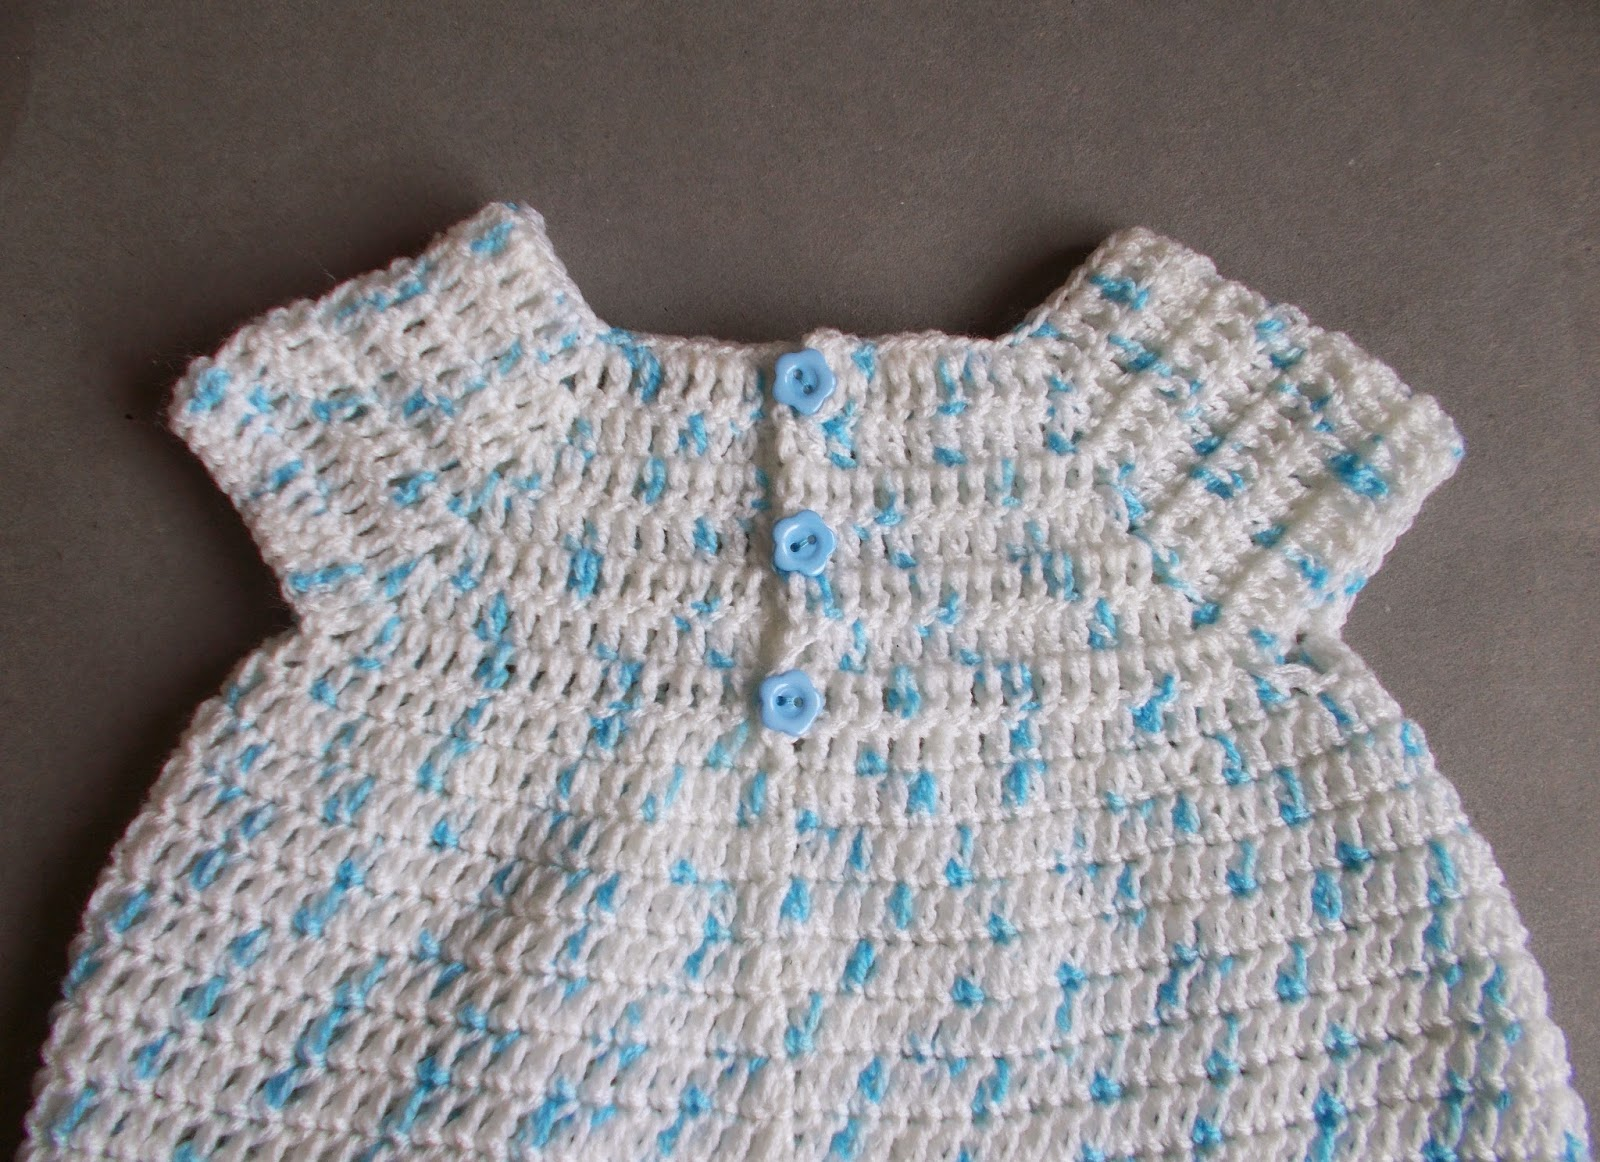 Marianna s lazy daisy days meadow sweet baby dress - Starting Out Crochet Baby Dress Back View